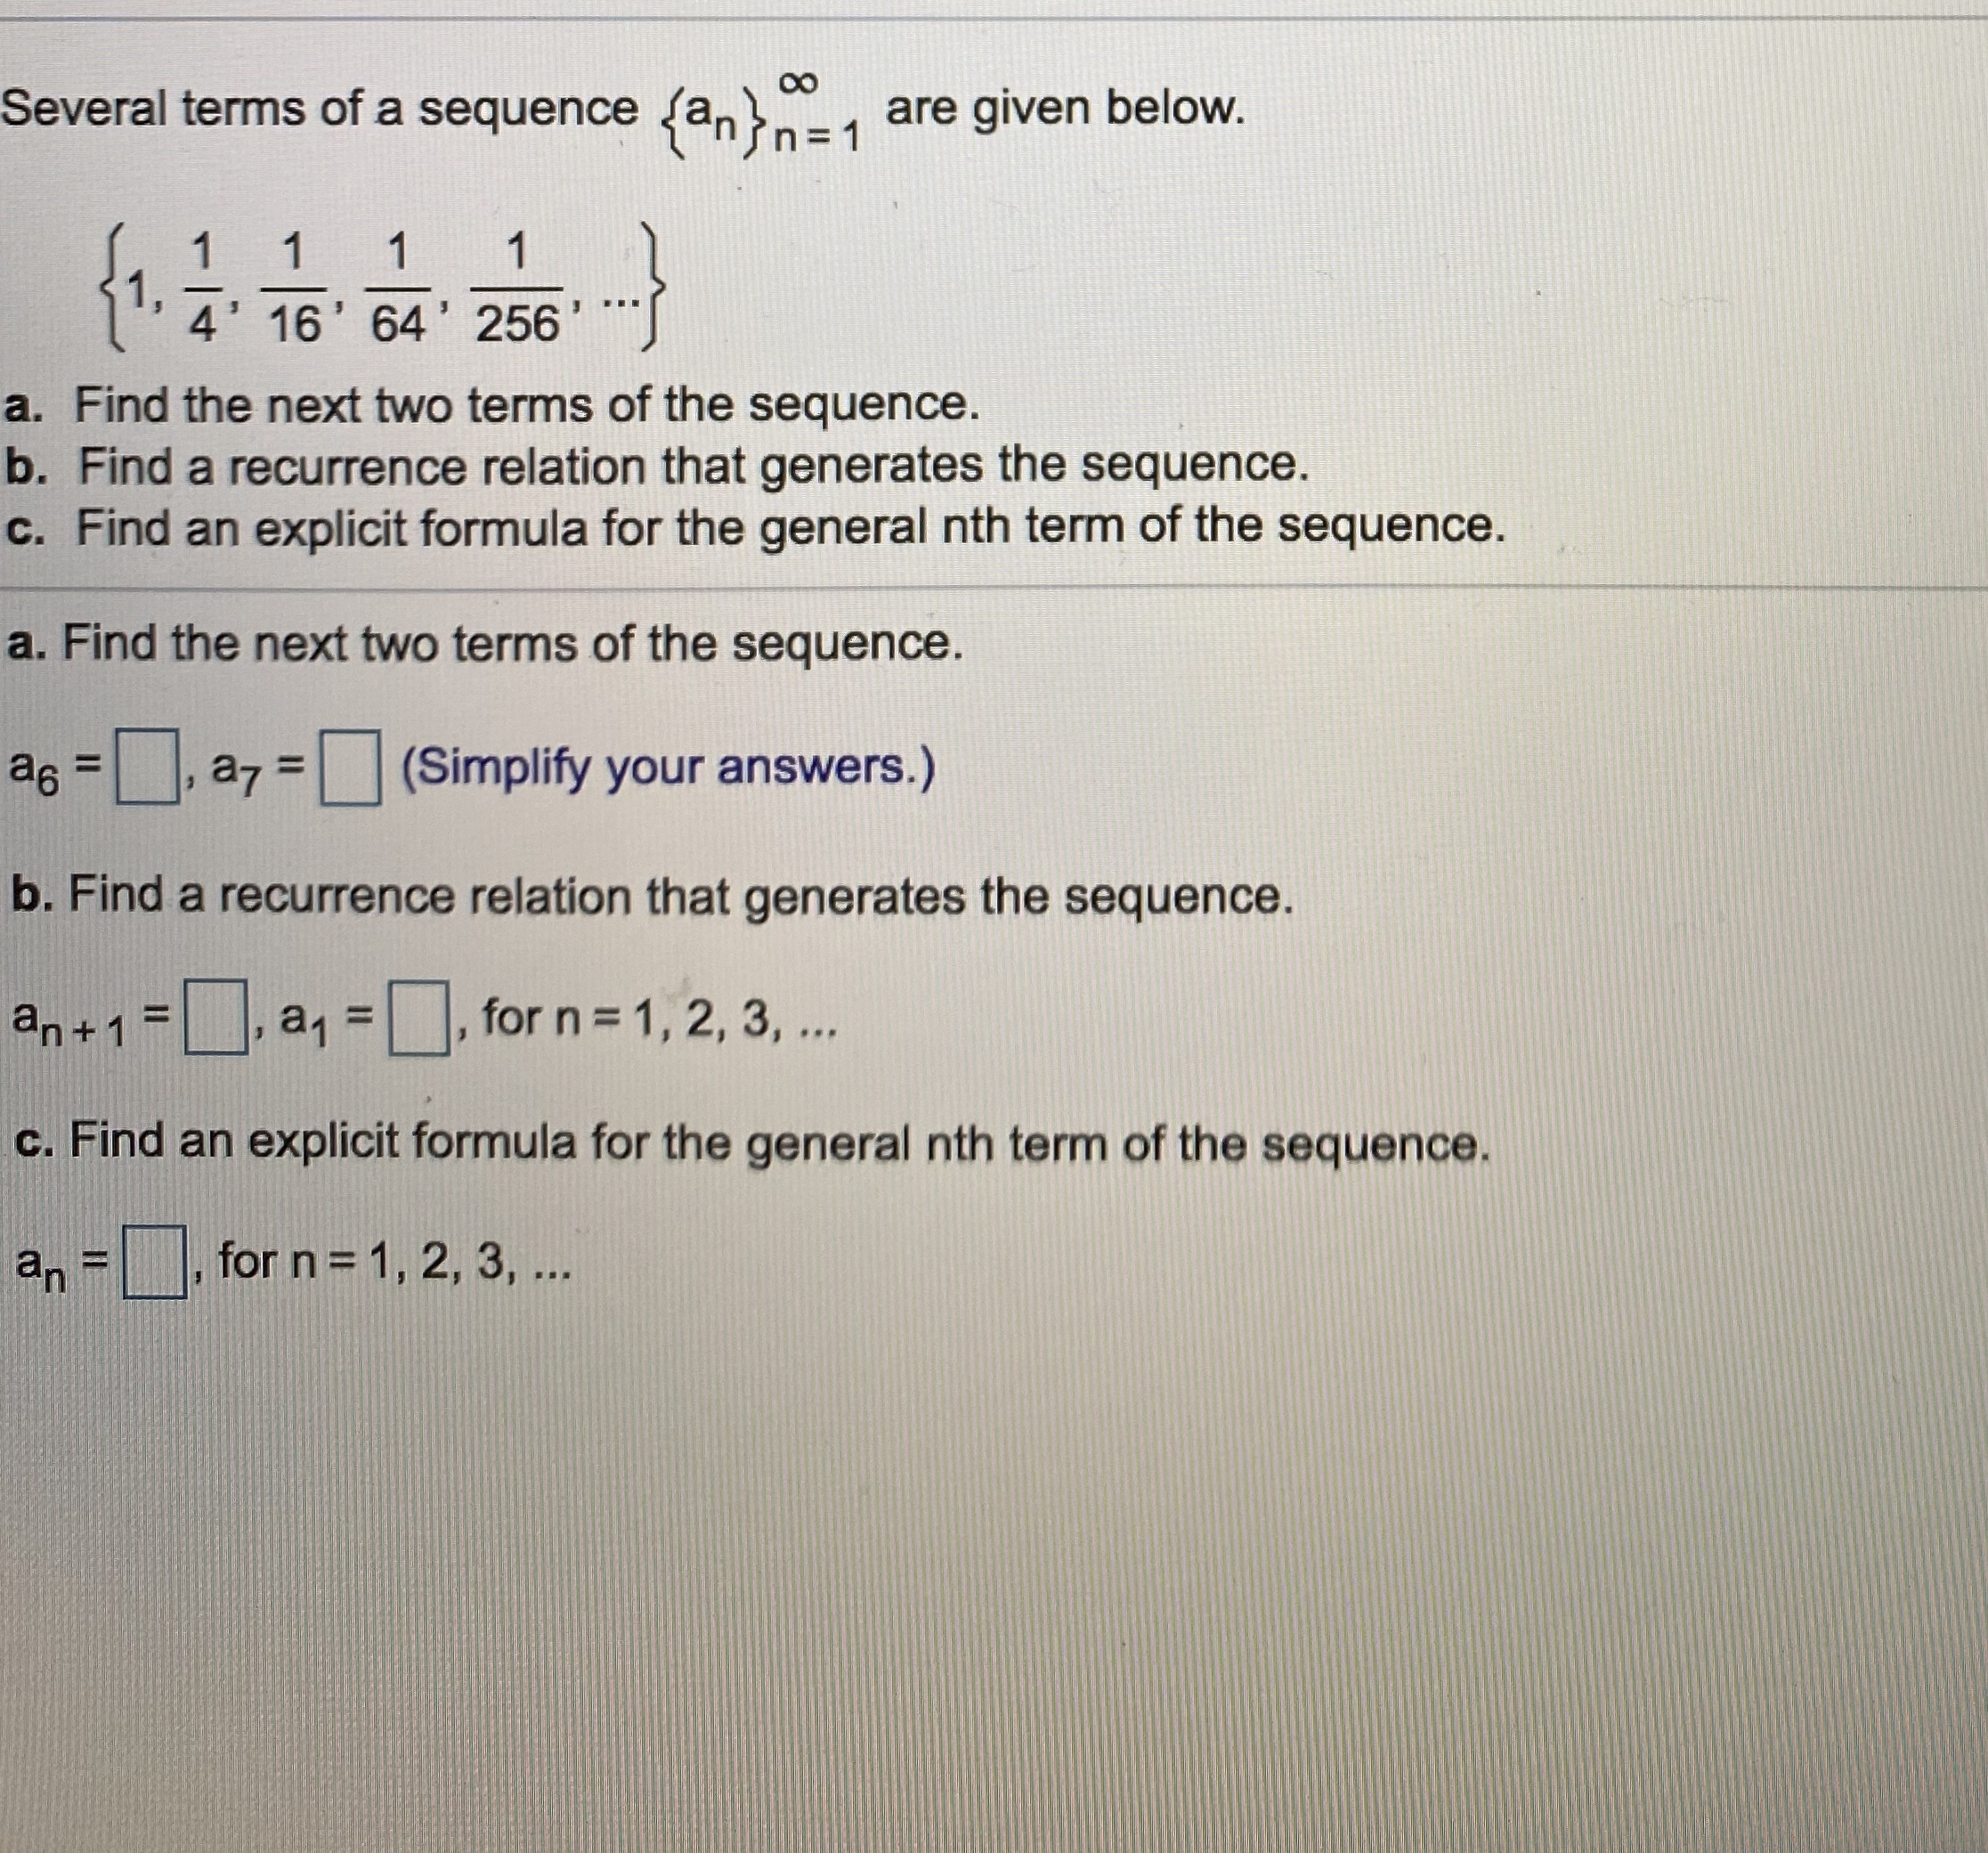 00 Several terms of a sequence (an}n31 are given below. {1. 1 1 1 4' 16' 64' 256 a. Find the next two terms of the sequence. b. Find a recurrence relation that generates the sequence. c. Find an explicit formula for the general nth term of the sequence. a. Find the next two terms of the sequence. as =, a7 = (Simplify your answers.) %3D %3D b. Find a recurrence relation that generates the sequence. an+1 = a, =, for n = 1, 2, 3, .. %3D c. Find an explicit formula for the general nth term of the sequence. an = %3D for n = 1, 2, 3, ...